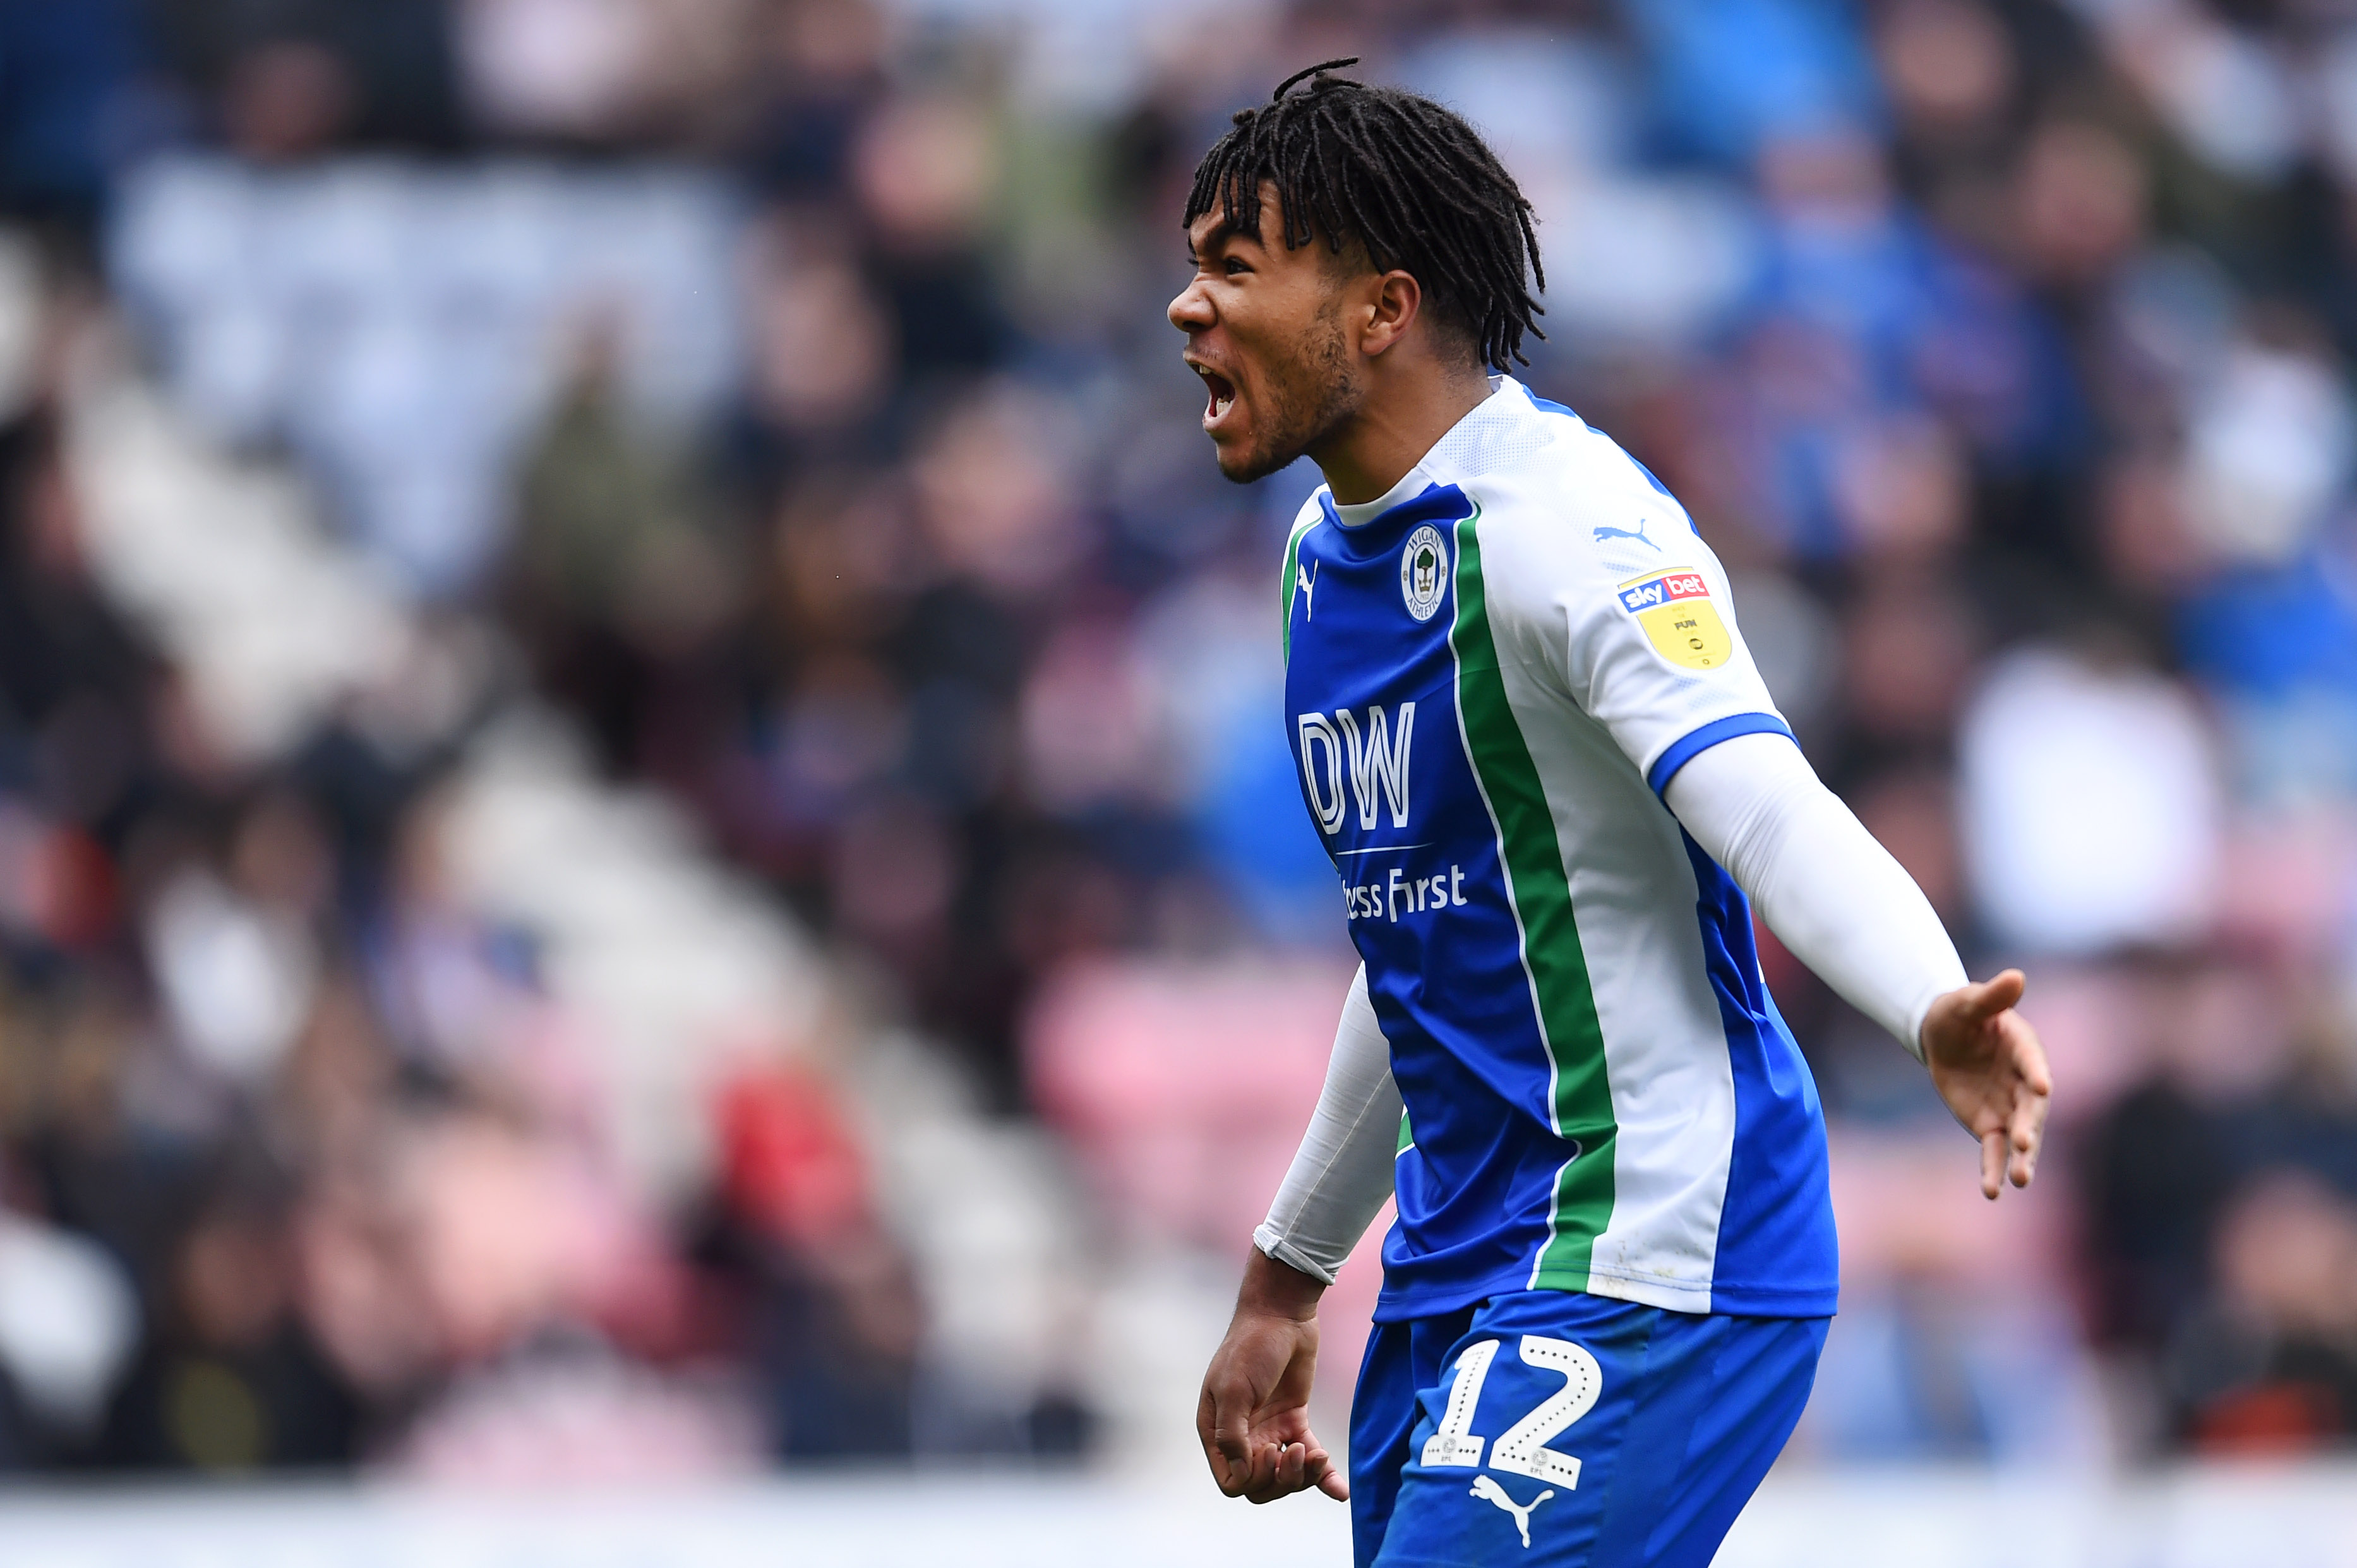 Swansea City 'keen to sign' Reece James on loan from Chelsea — report